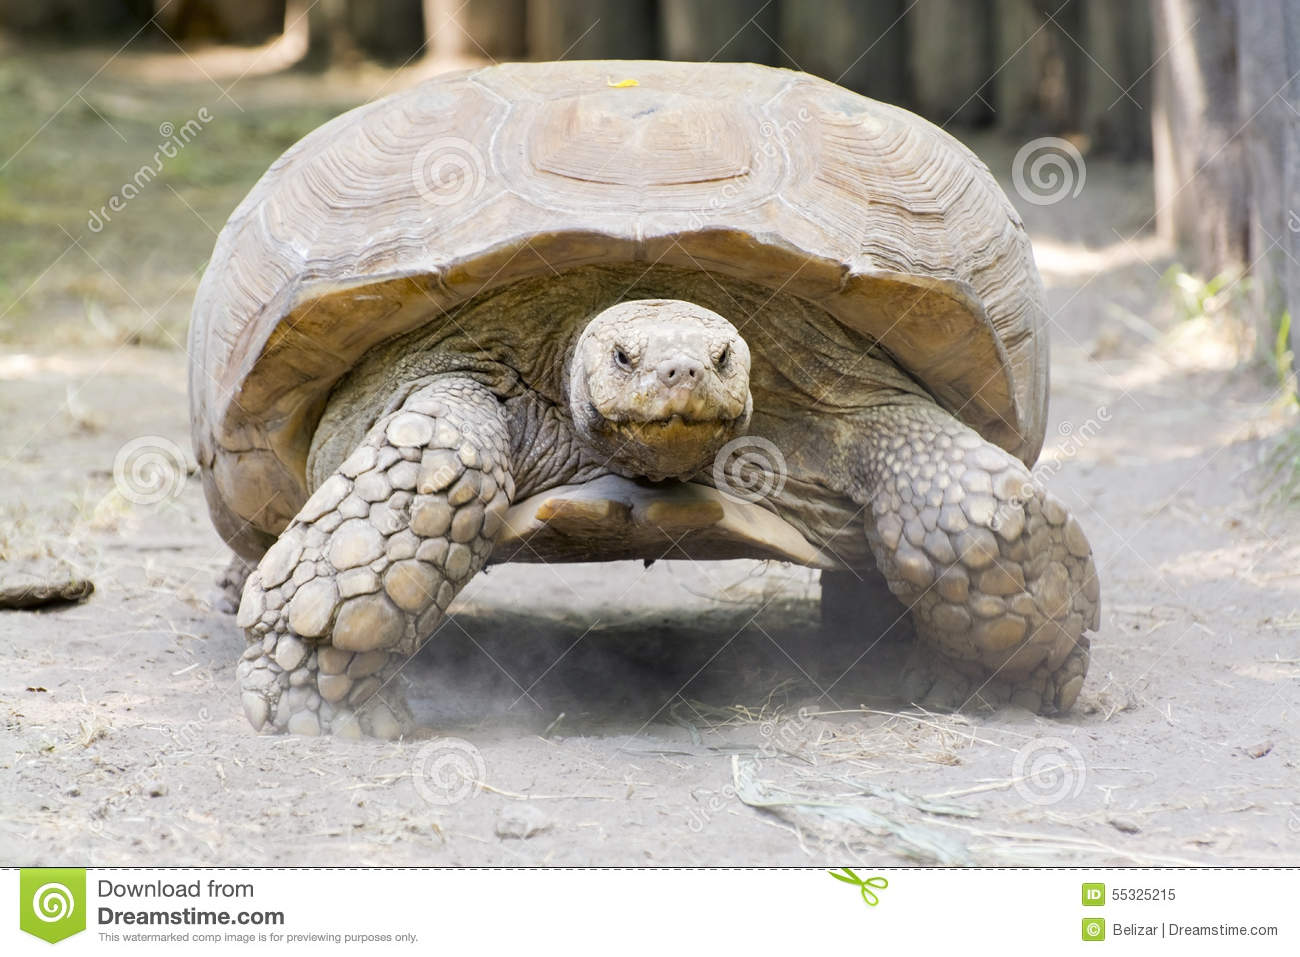 Sulcata Tortoise clipart #12, Download drawings